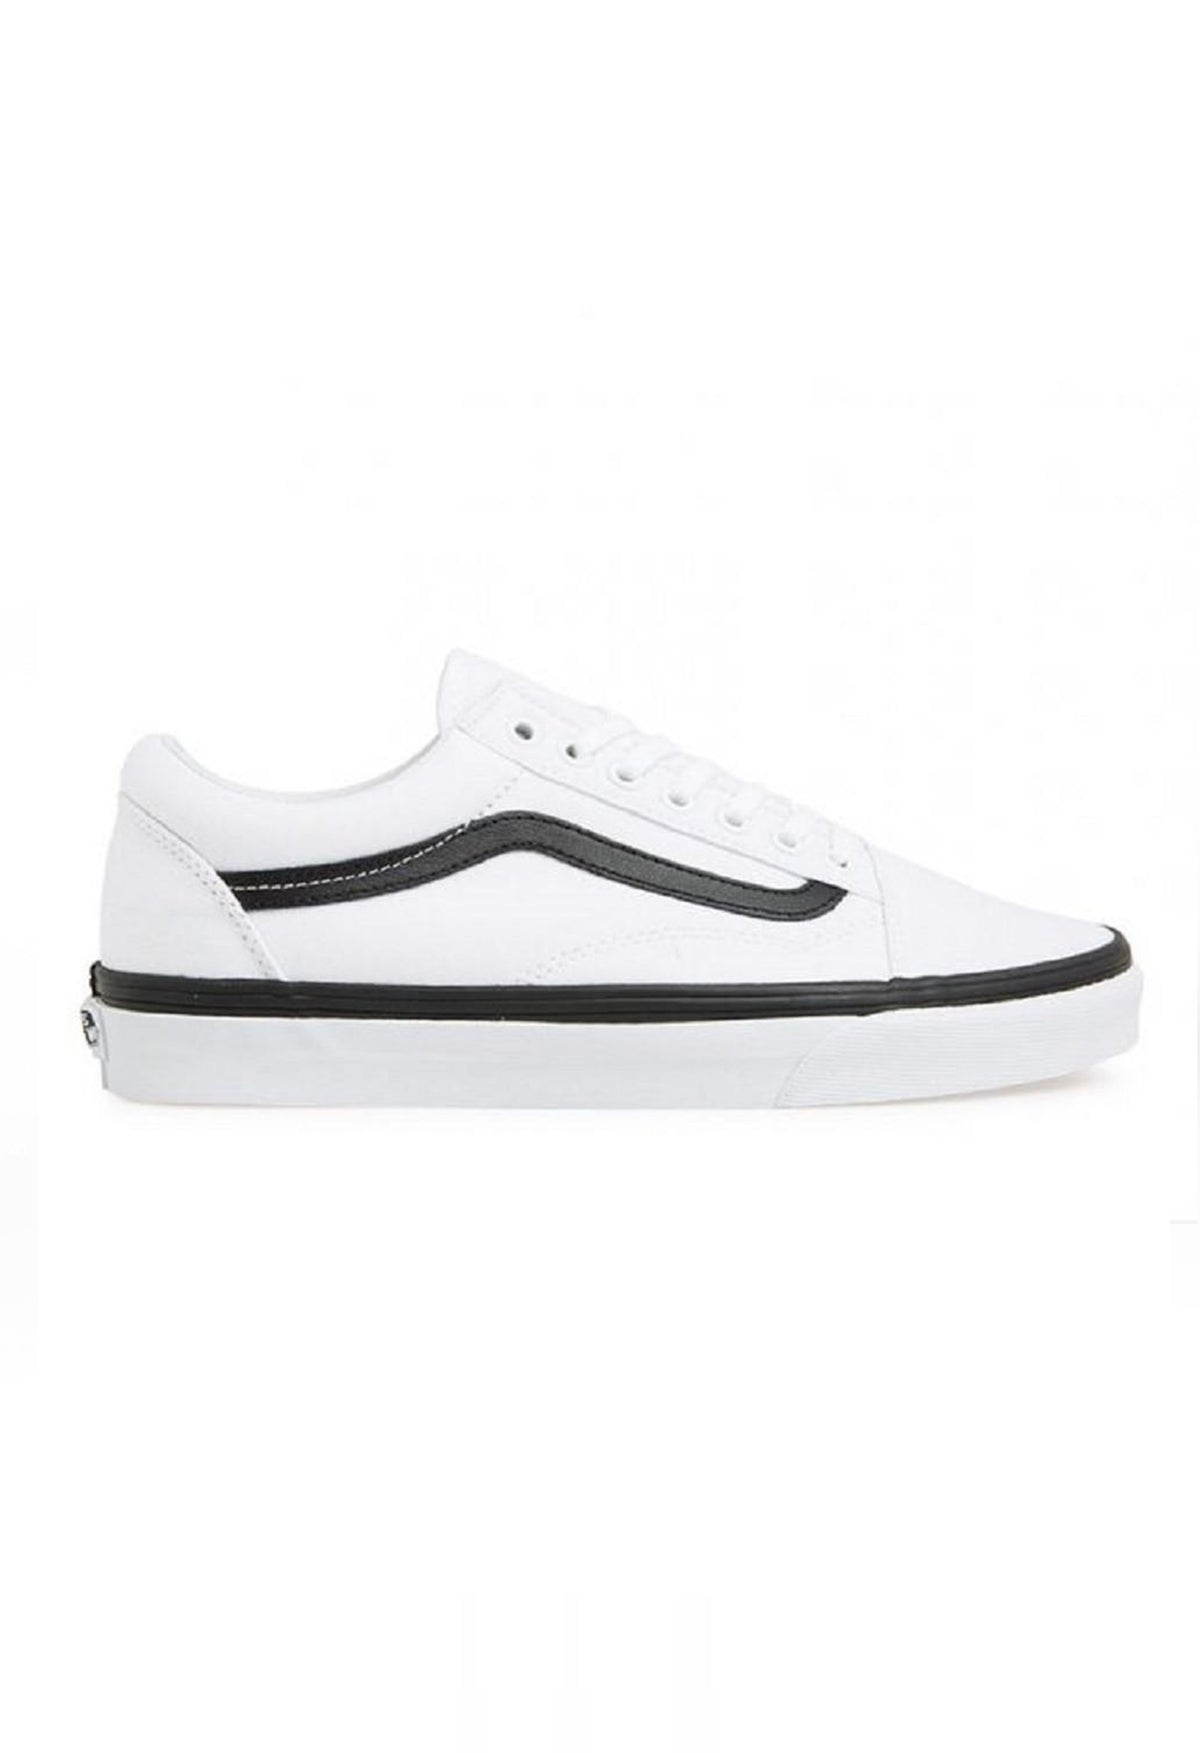 Old Skool pop foxing white with black Vans Stockists New Zealand Buy Online Vans Skate Shoes Street Lace up Sneakers